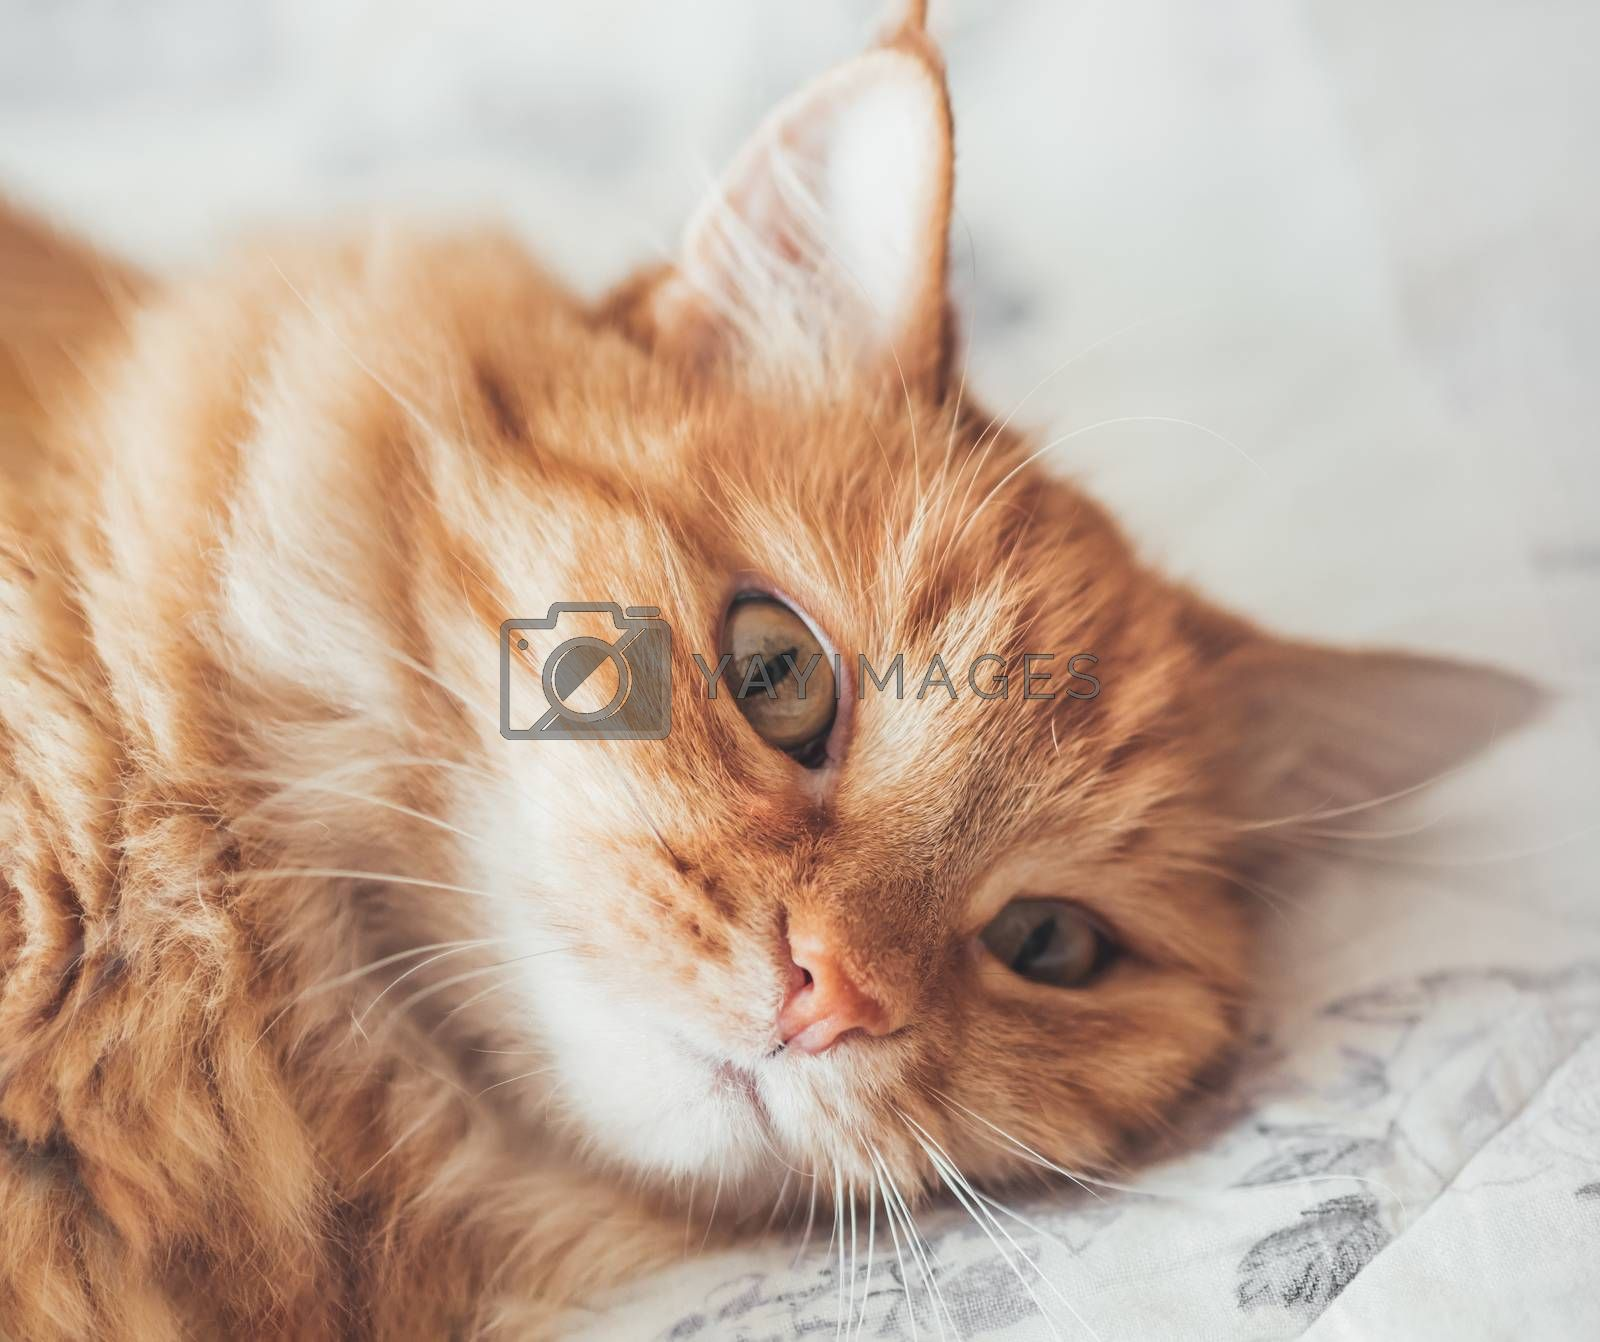 Close up portrait of cute ginger cat lying on bed. Curious and funny pet. Fuzzy domestic animal.